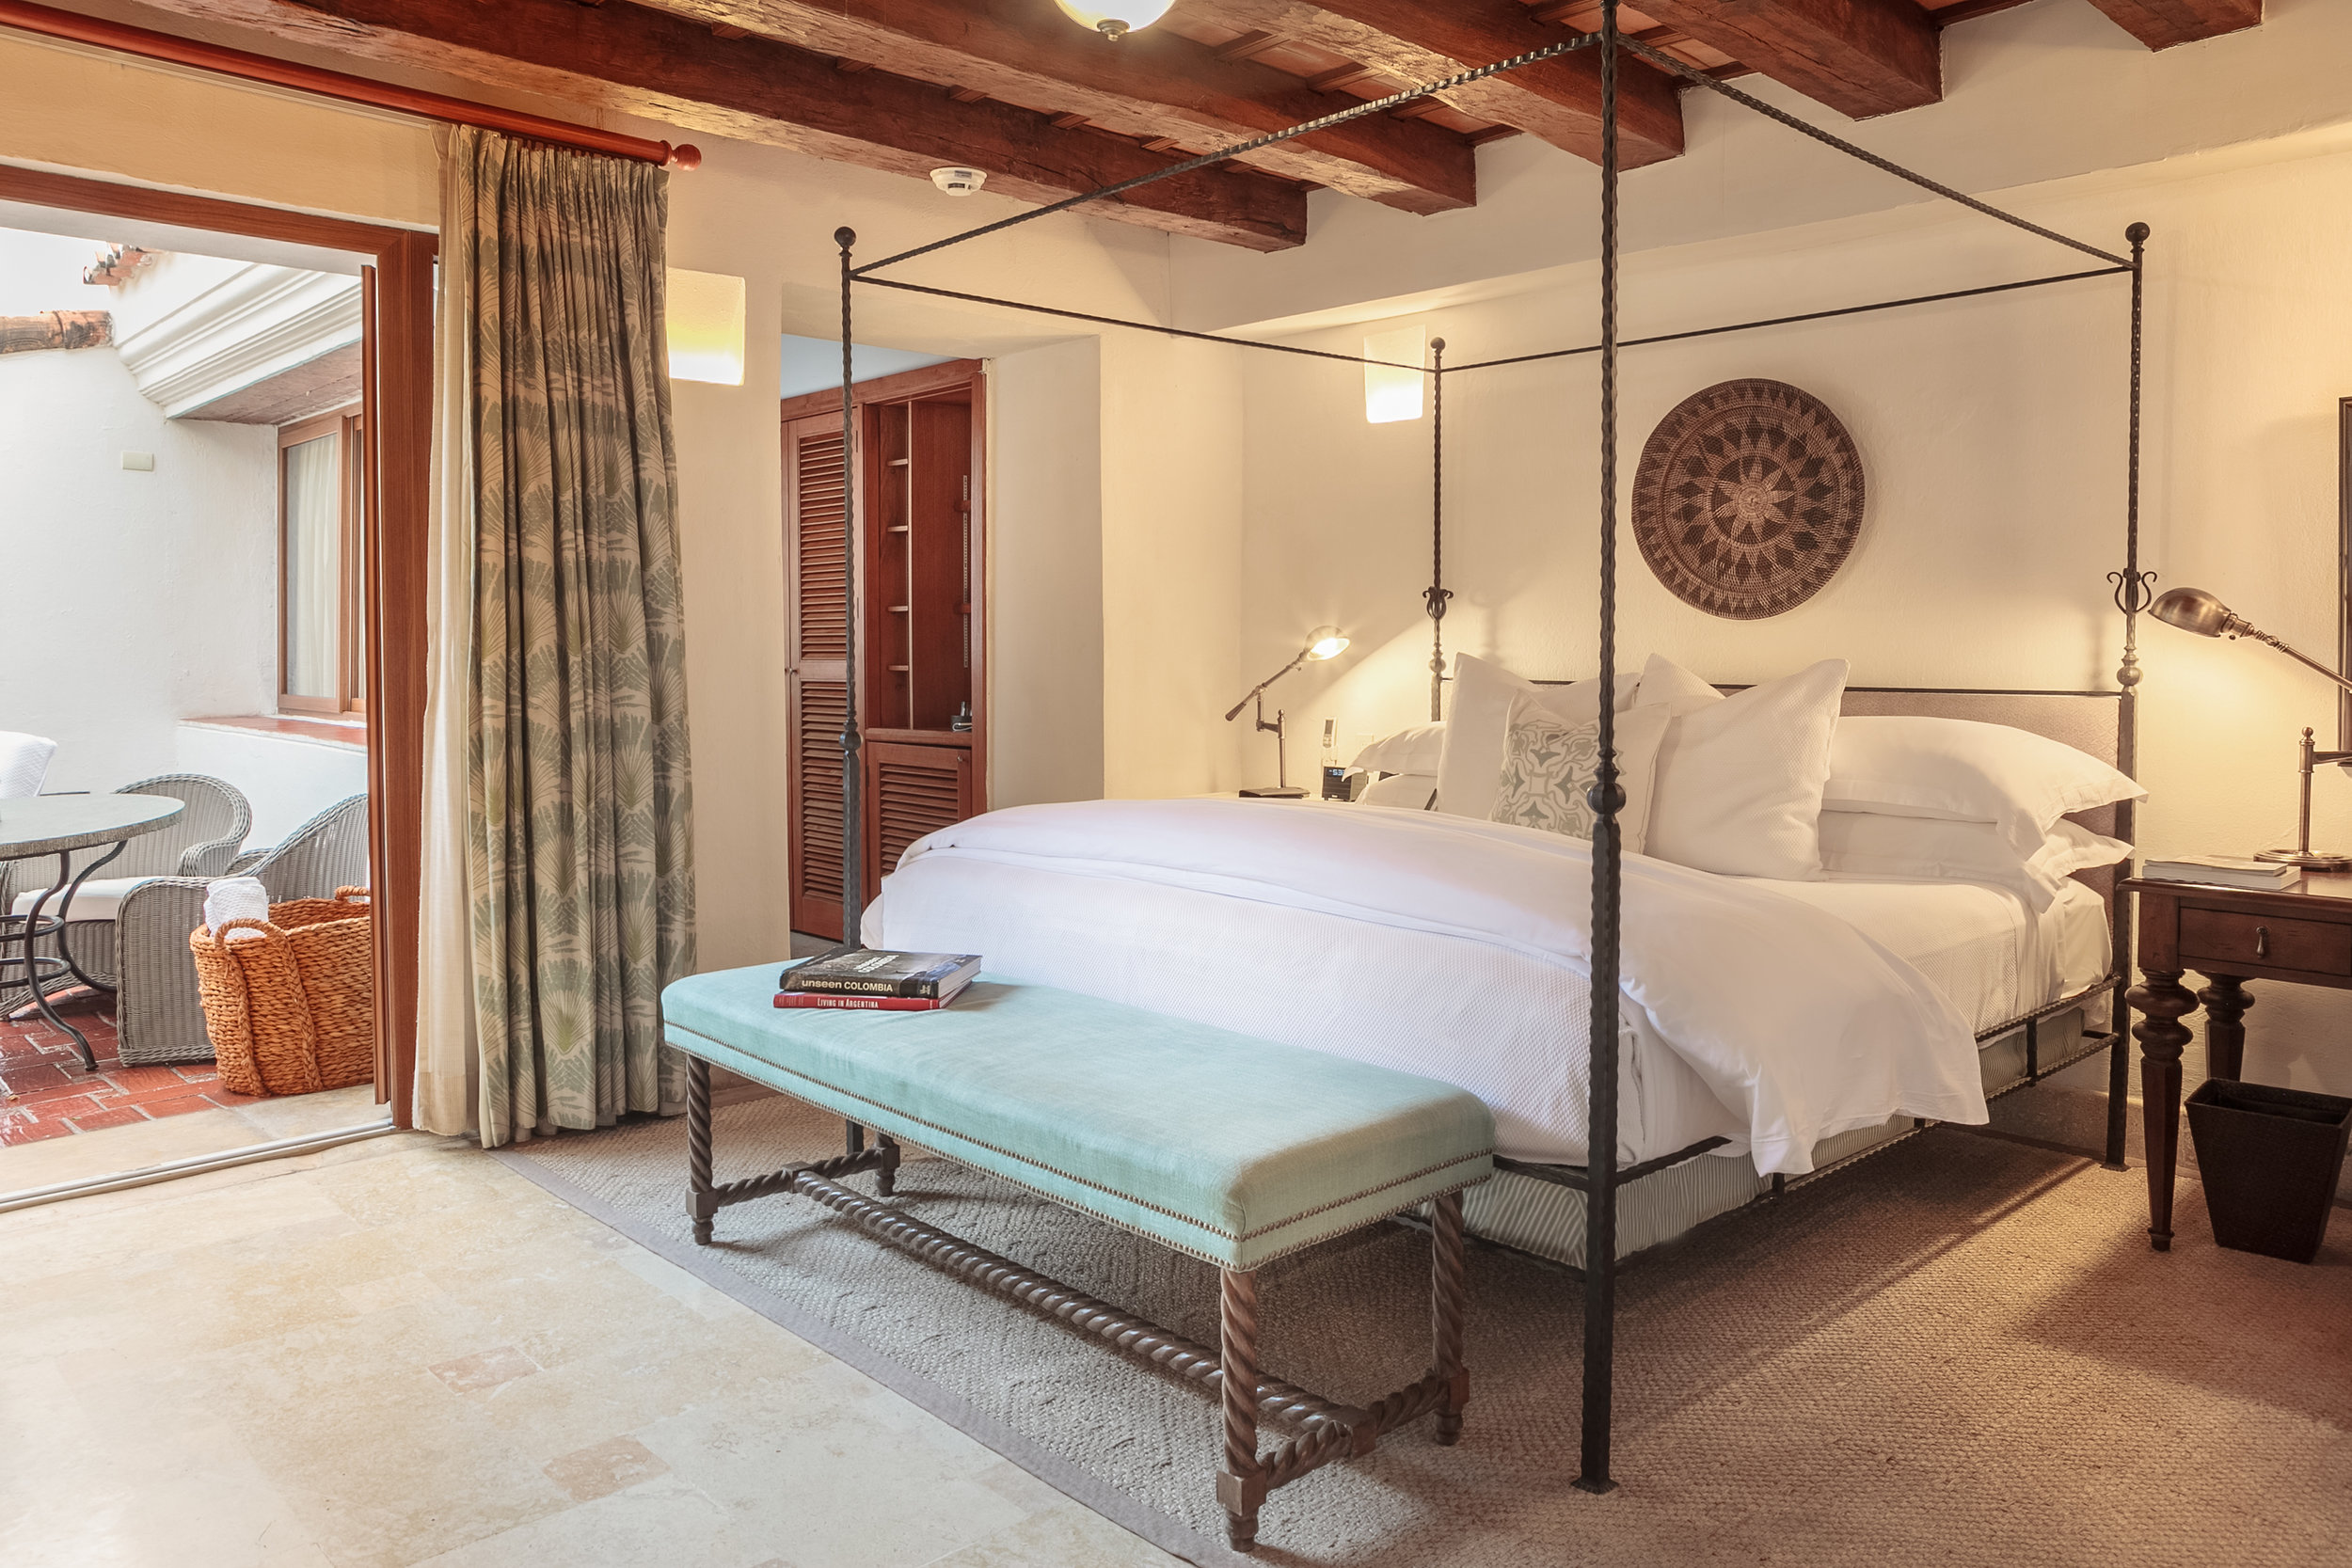 Guestroom at Hotel Casa San Agustin ( photo courtesy of Hotel Casa San Agustin)